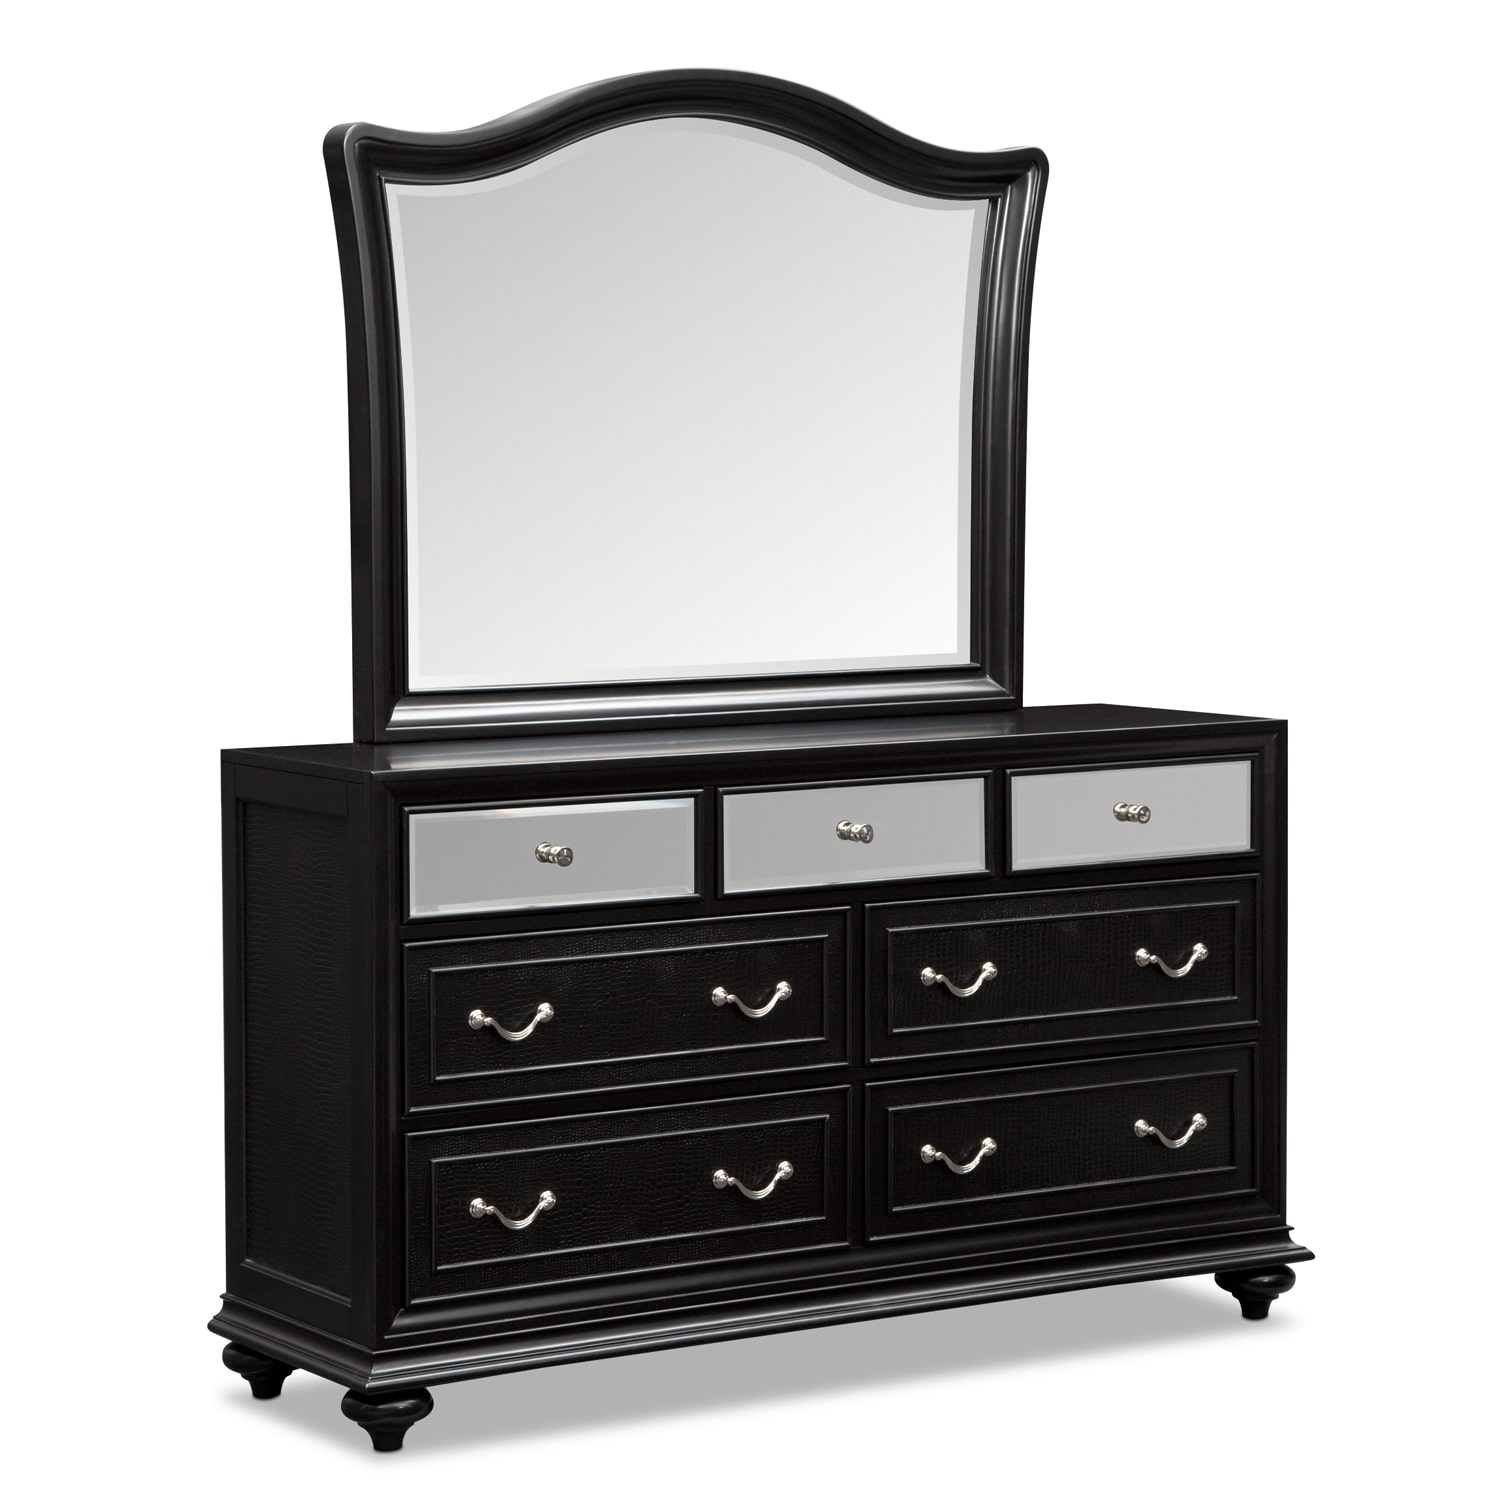 Marilyn Dresser and Mirror - Ebony